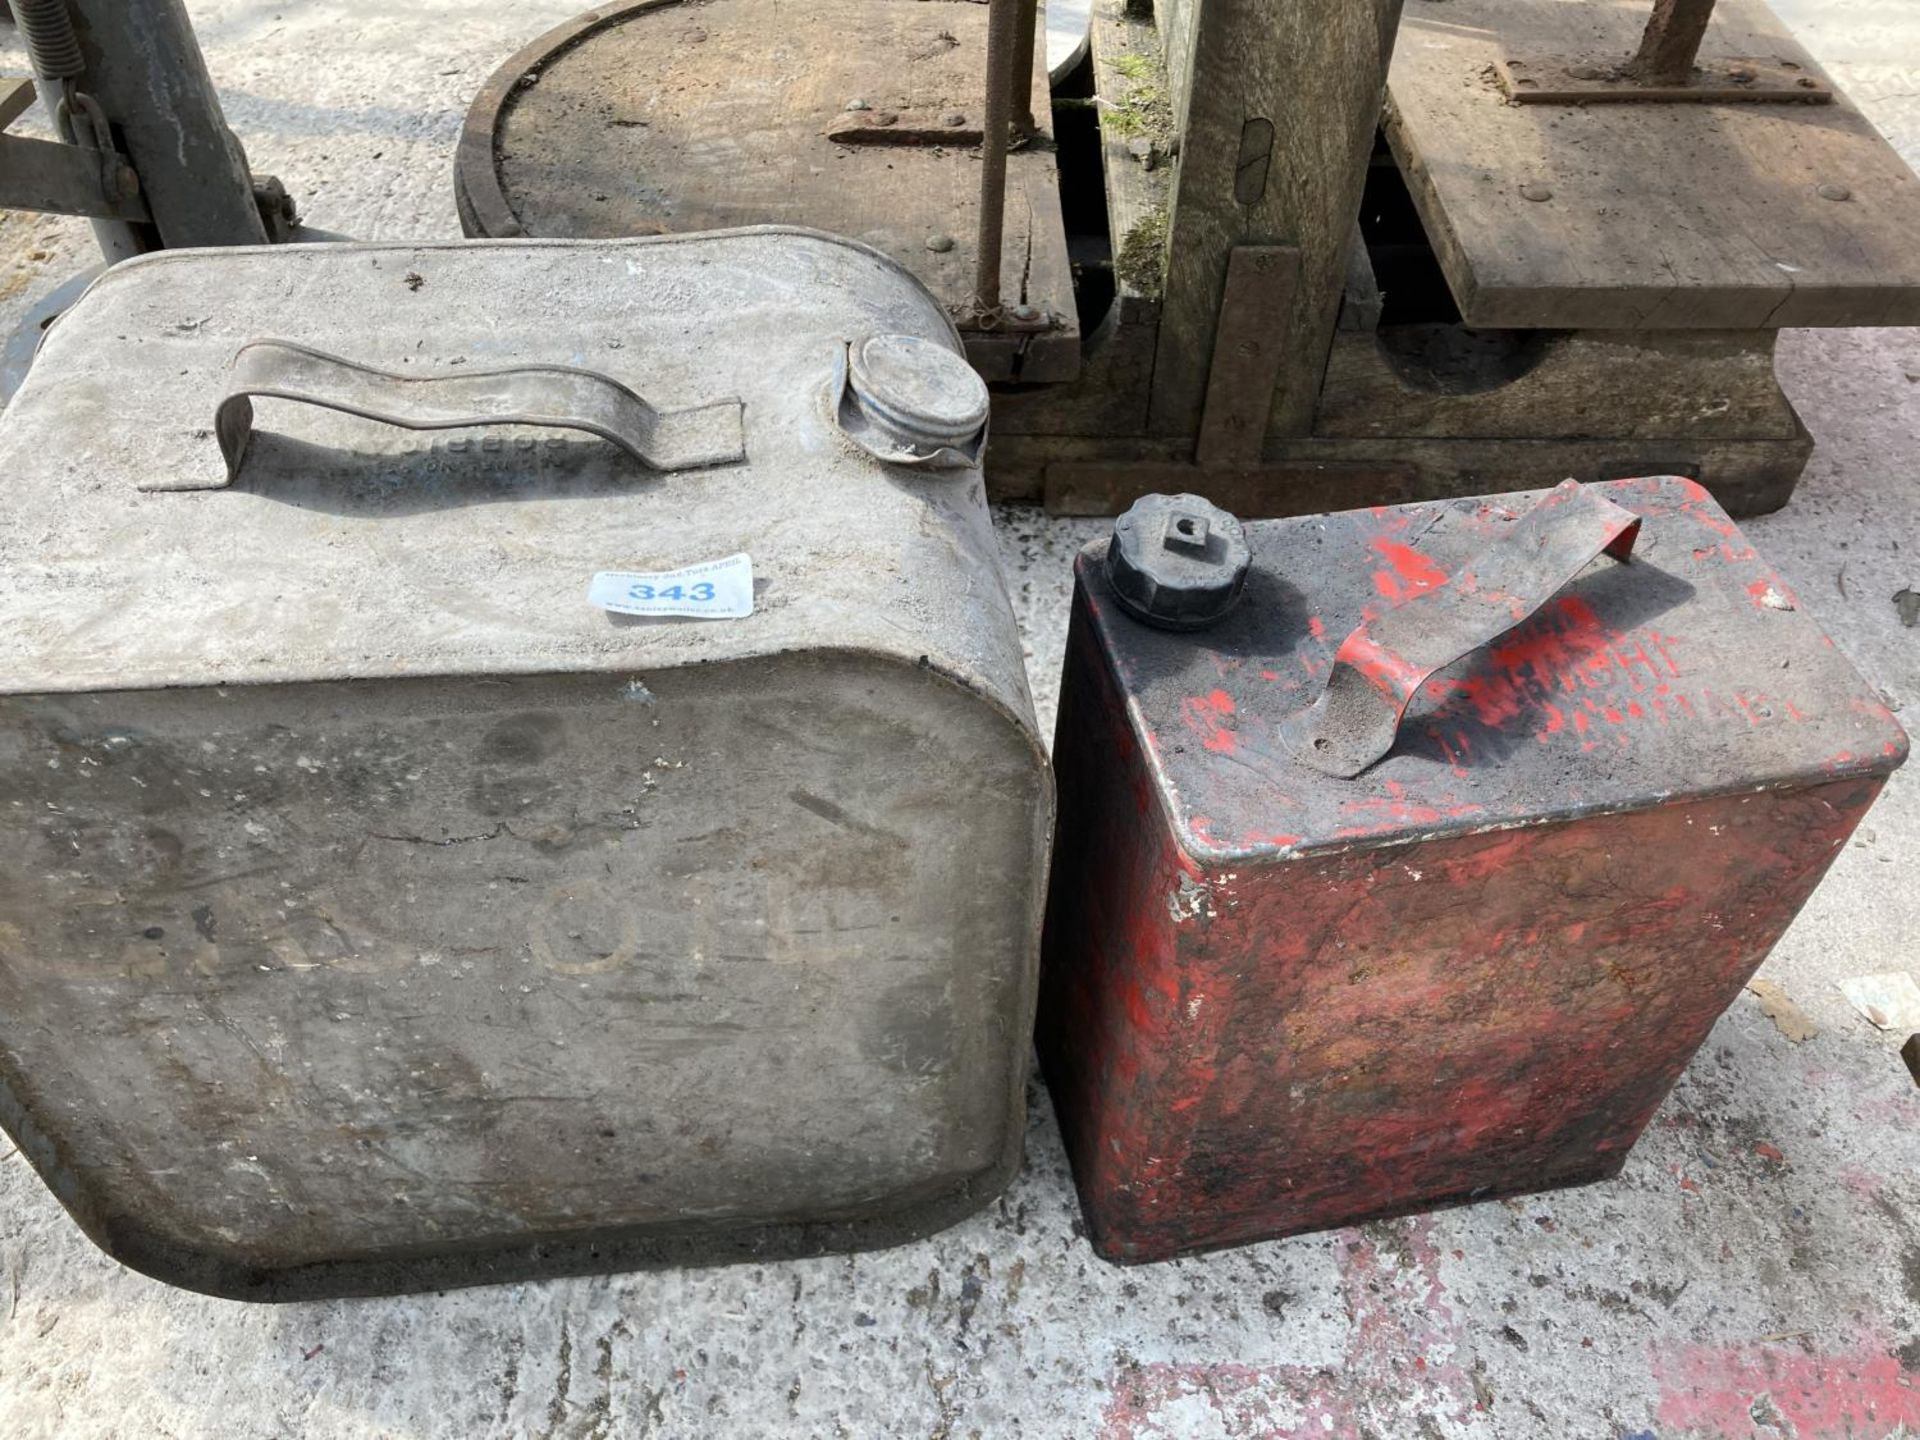 TWO FUEL CANS NO VAT